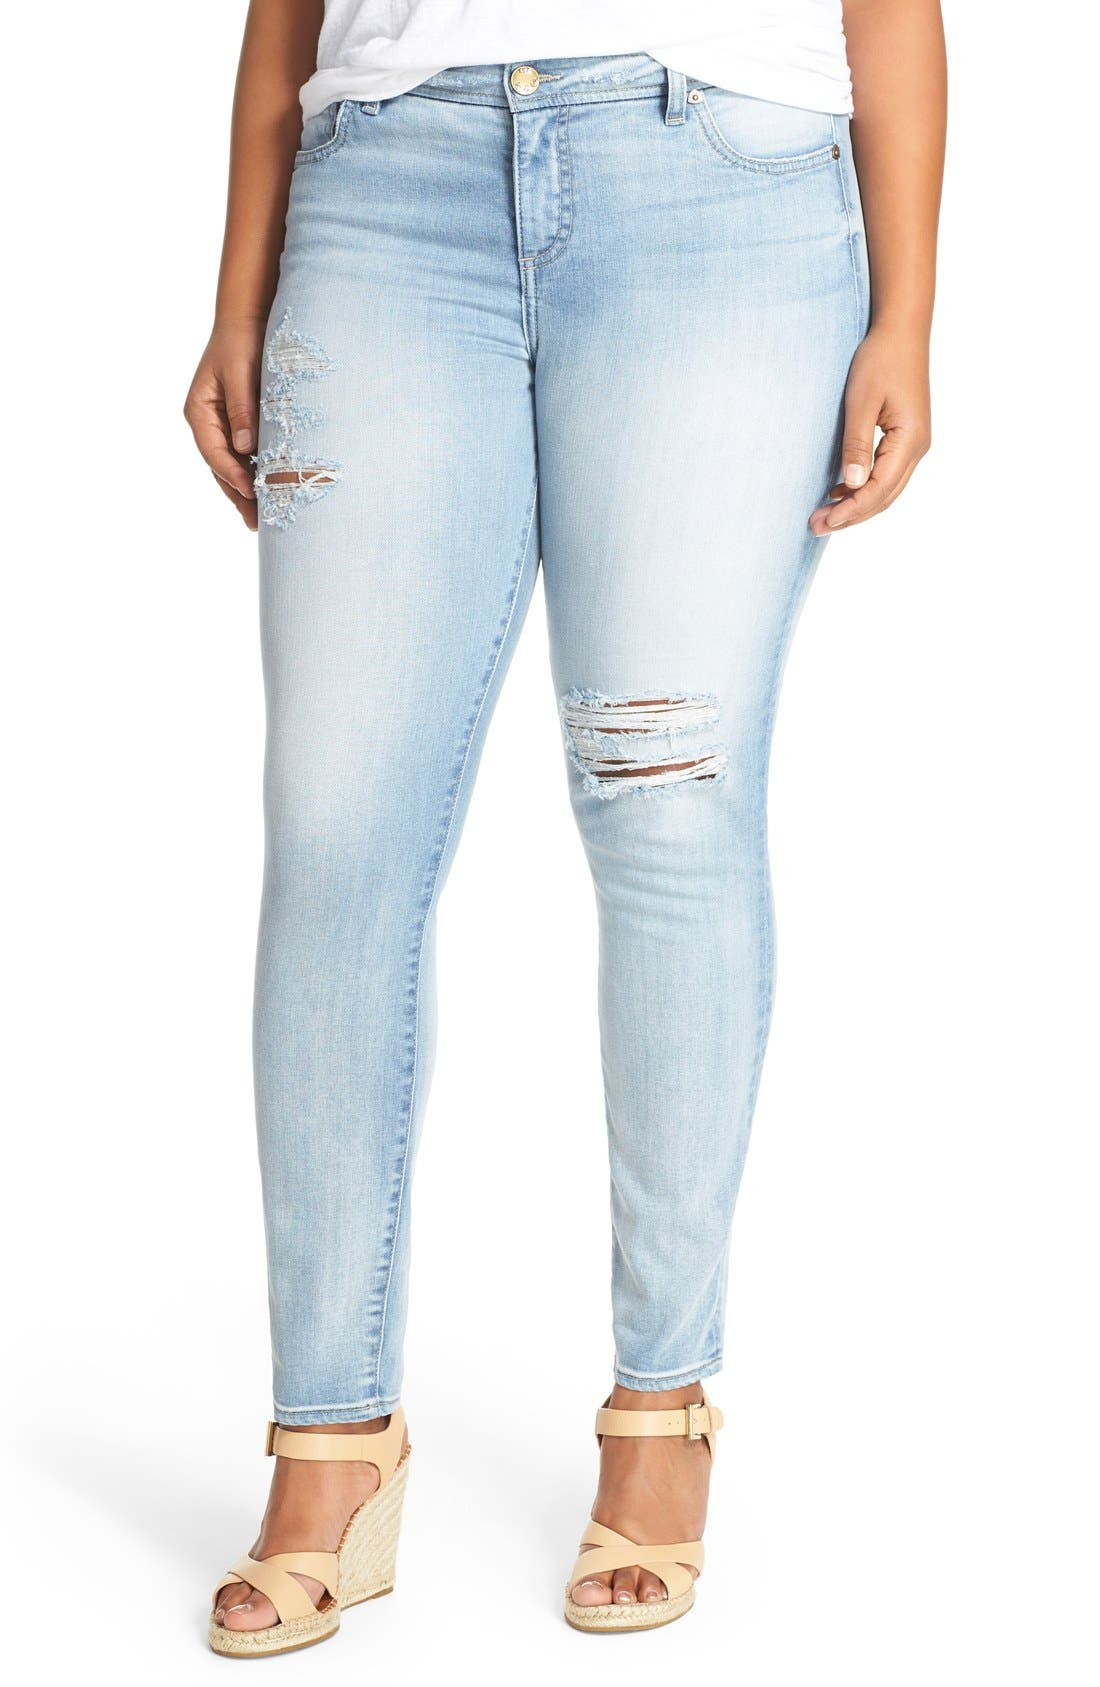 Main Image - KUT from the Kloth 'Adele' Ripped Stretch Slouchy Boyfriend Jeans (Upgrade) (Plus Size)